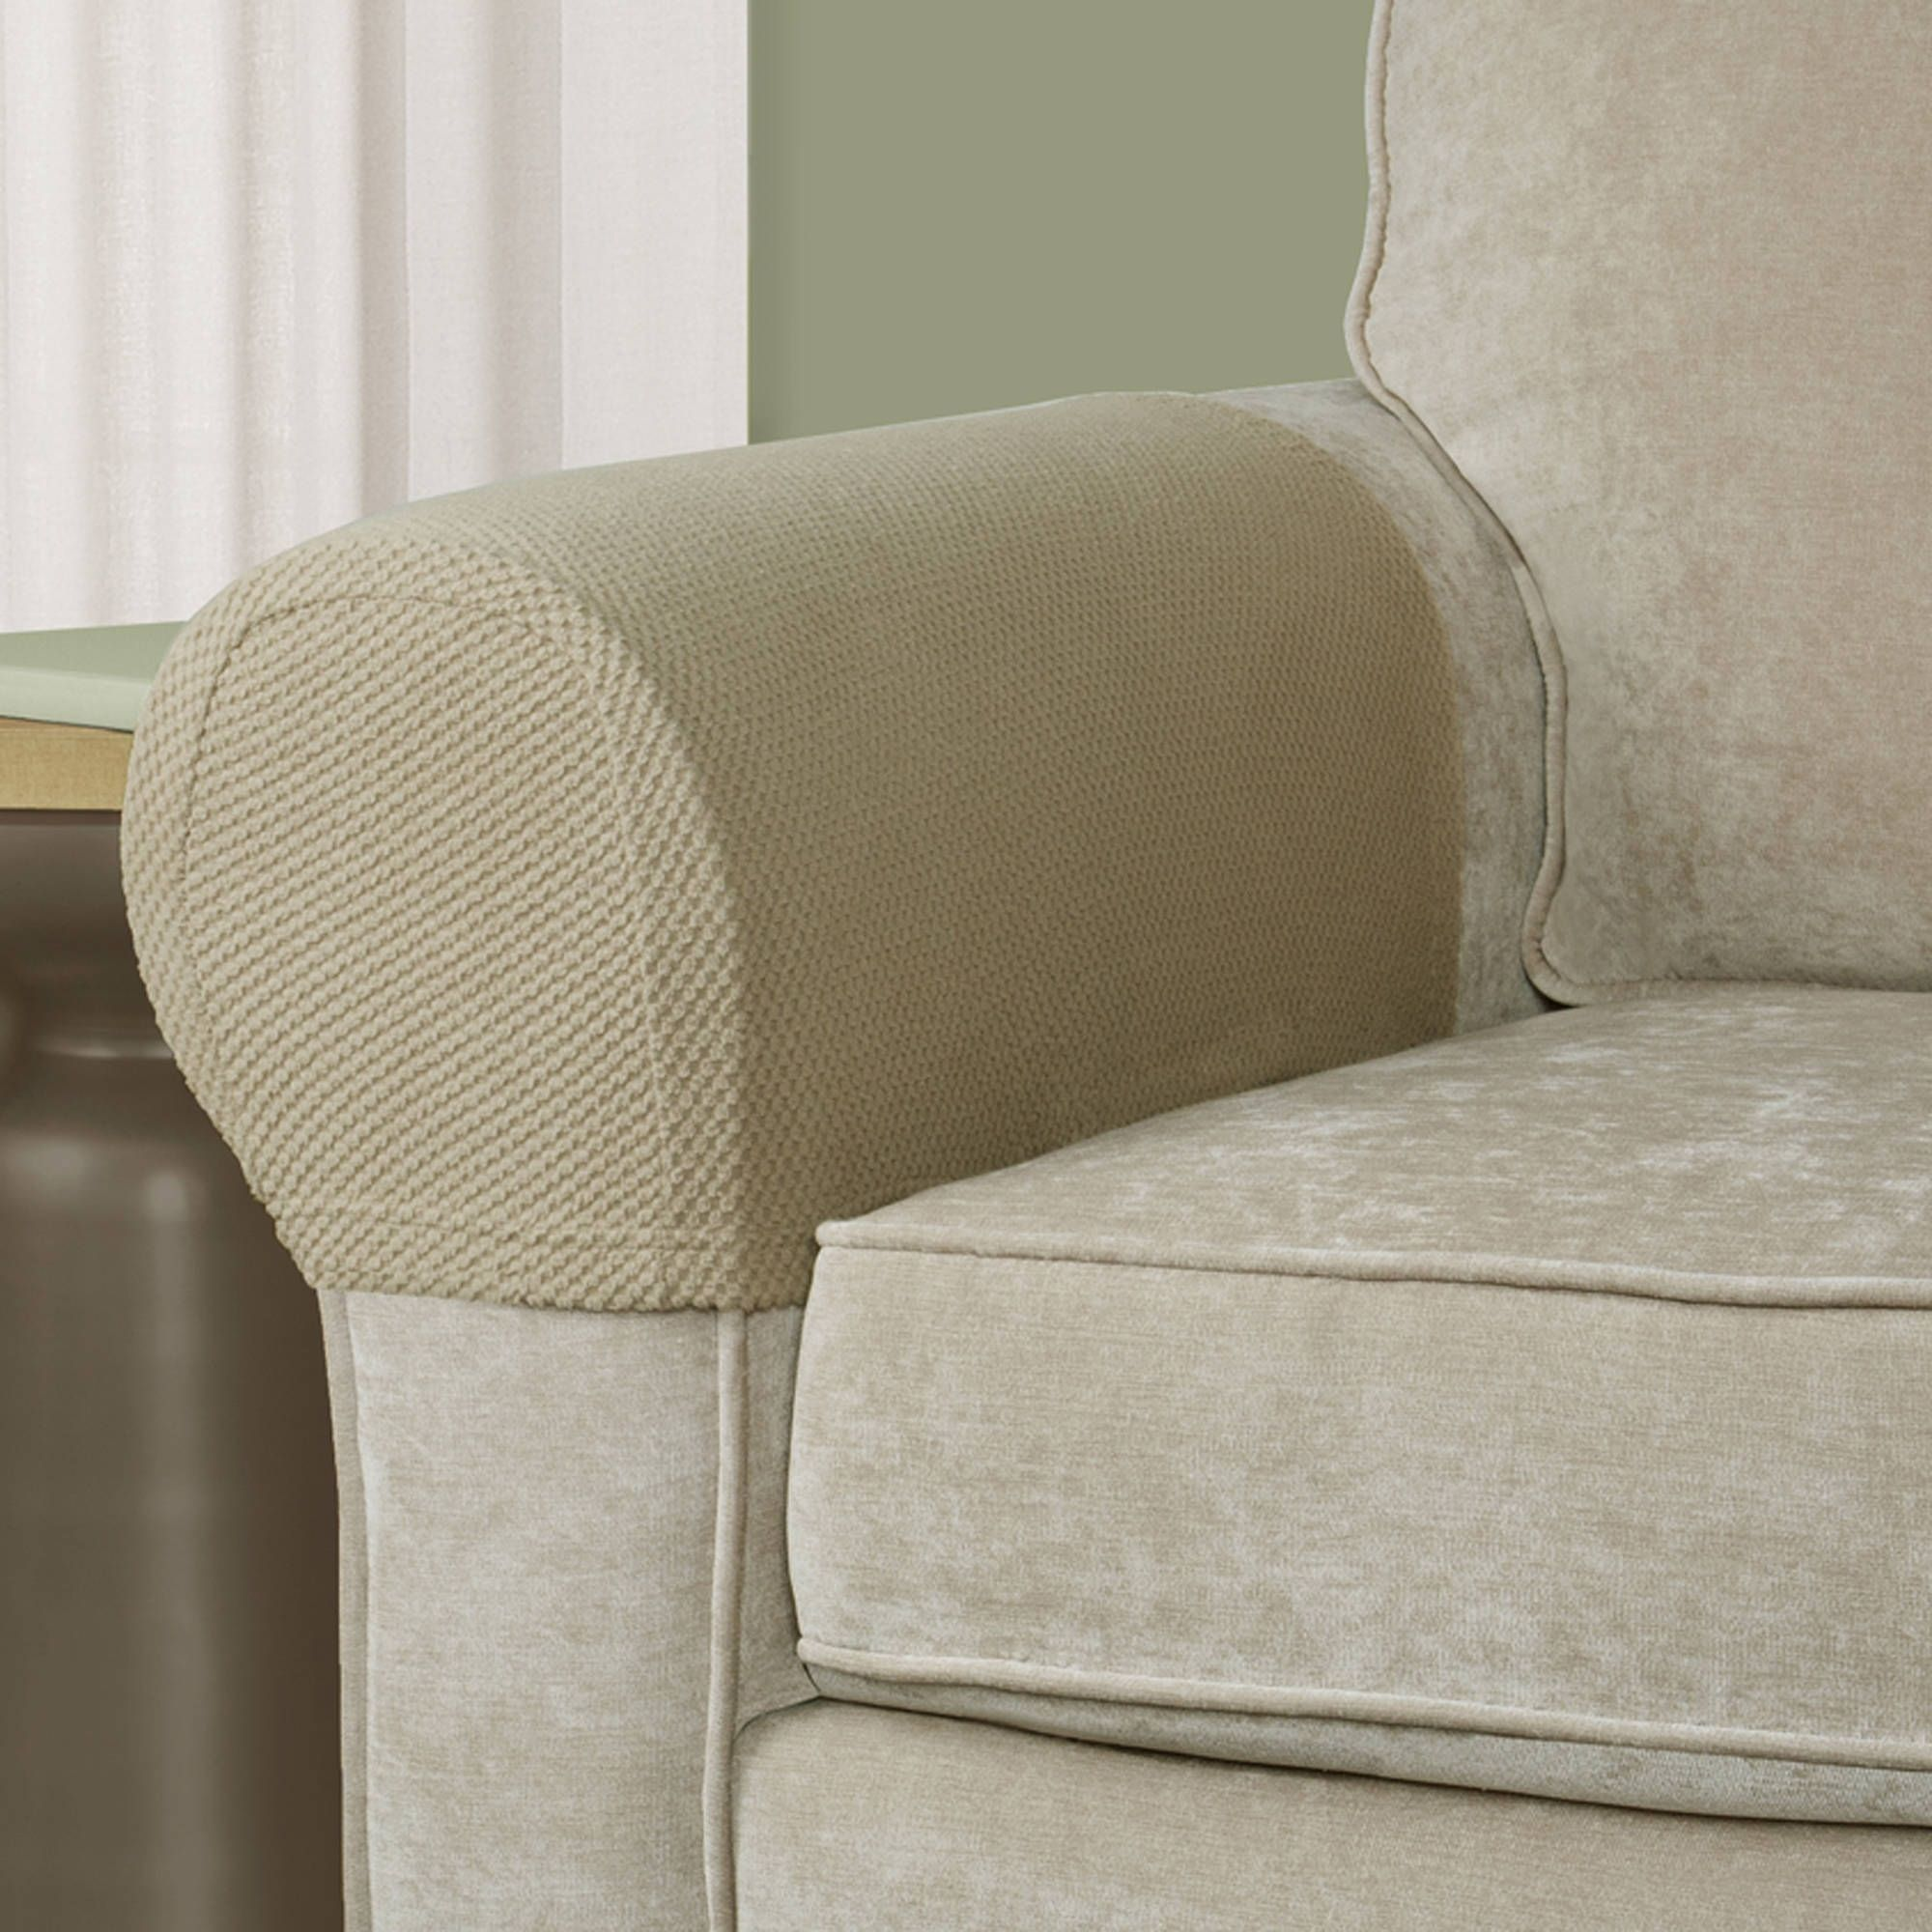 table contemporary with full cover dimensions parsons slipcovers dining room living x furniture kitchen in livings chair covers chairs parsonus buy of wheels padded size fabric parson sets slipcovered striped slip chic shabby